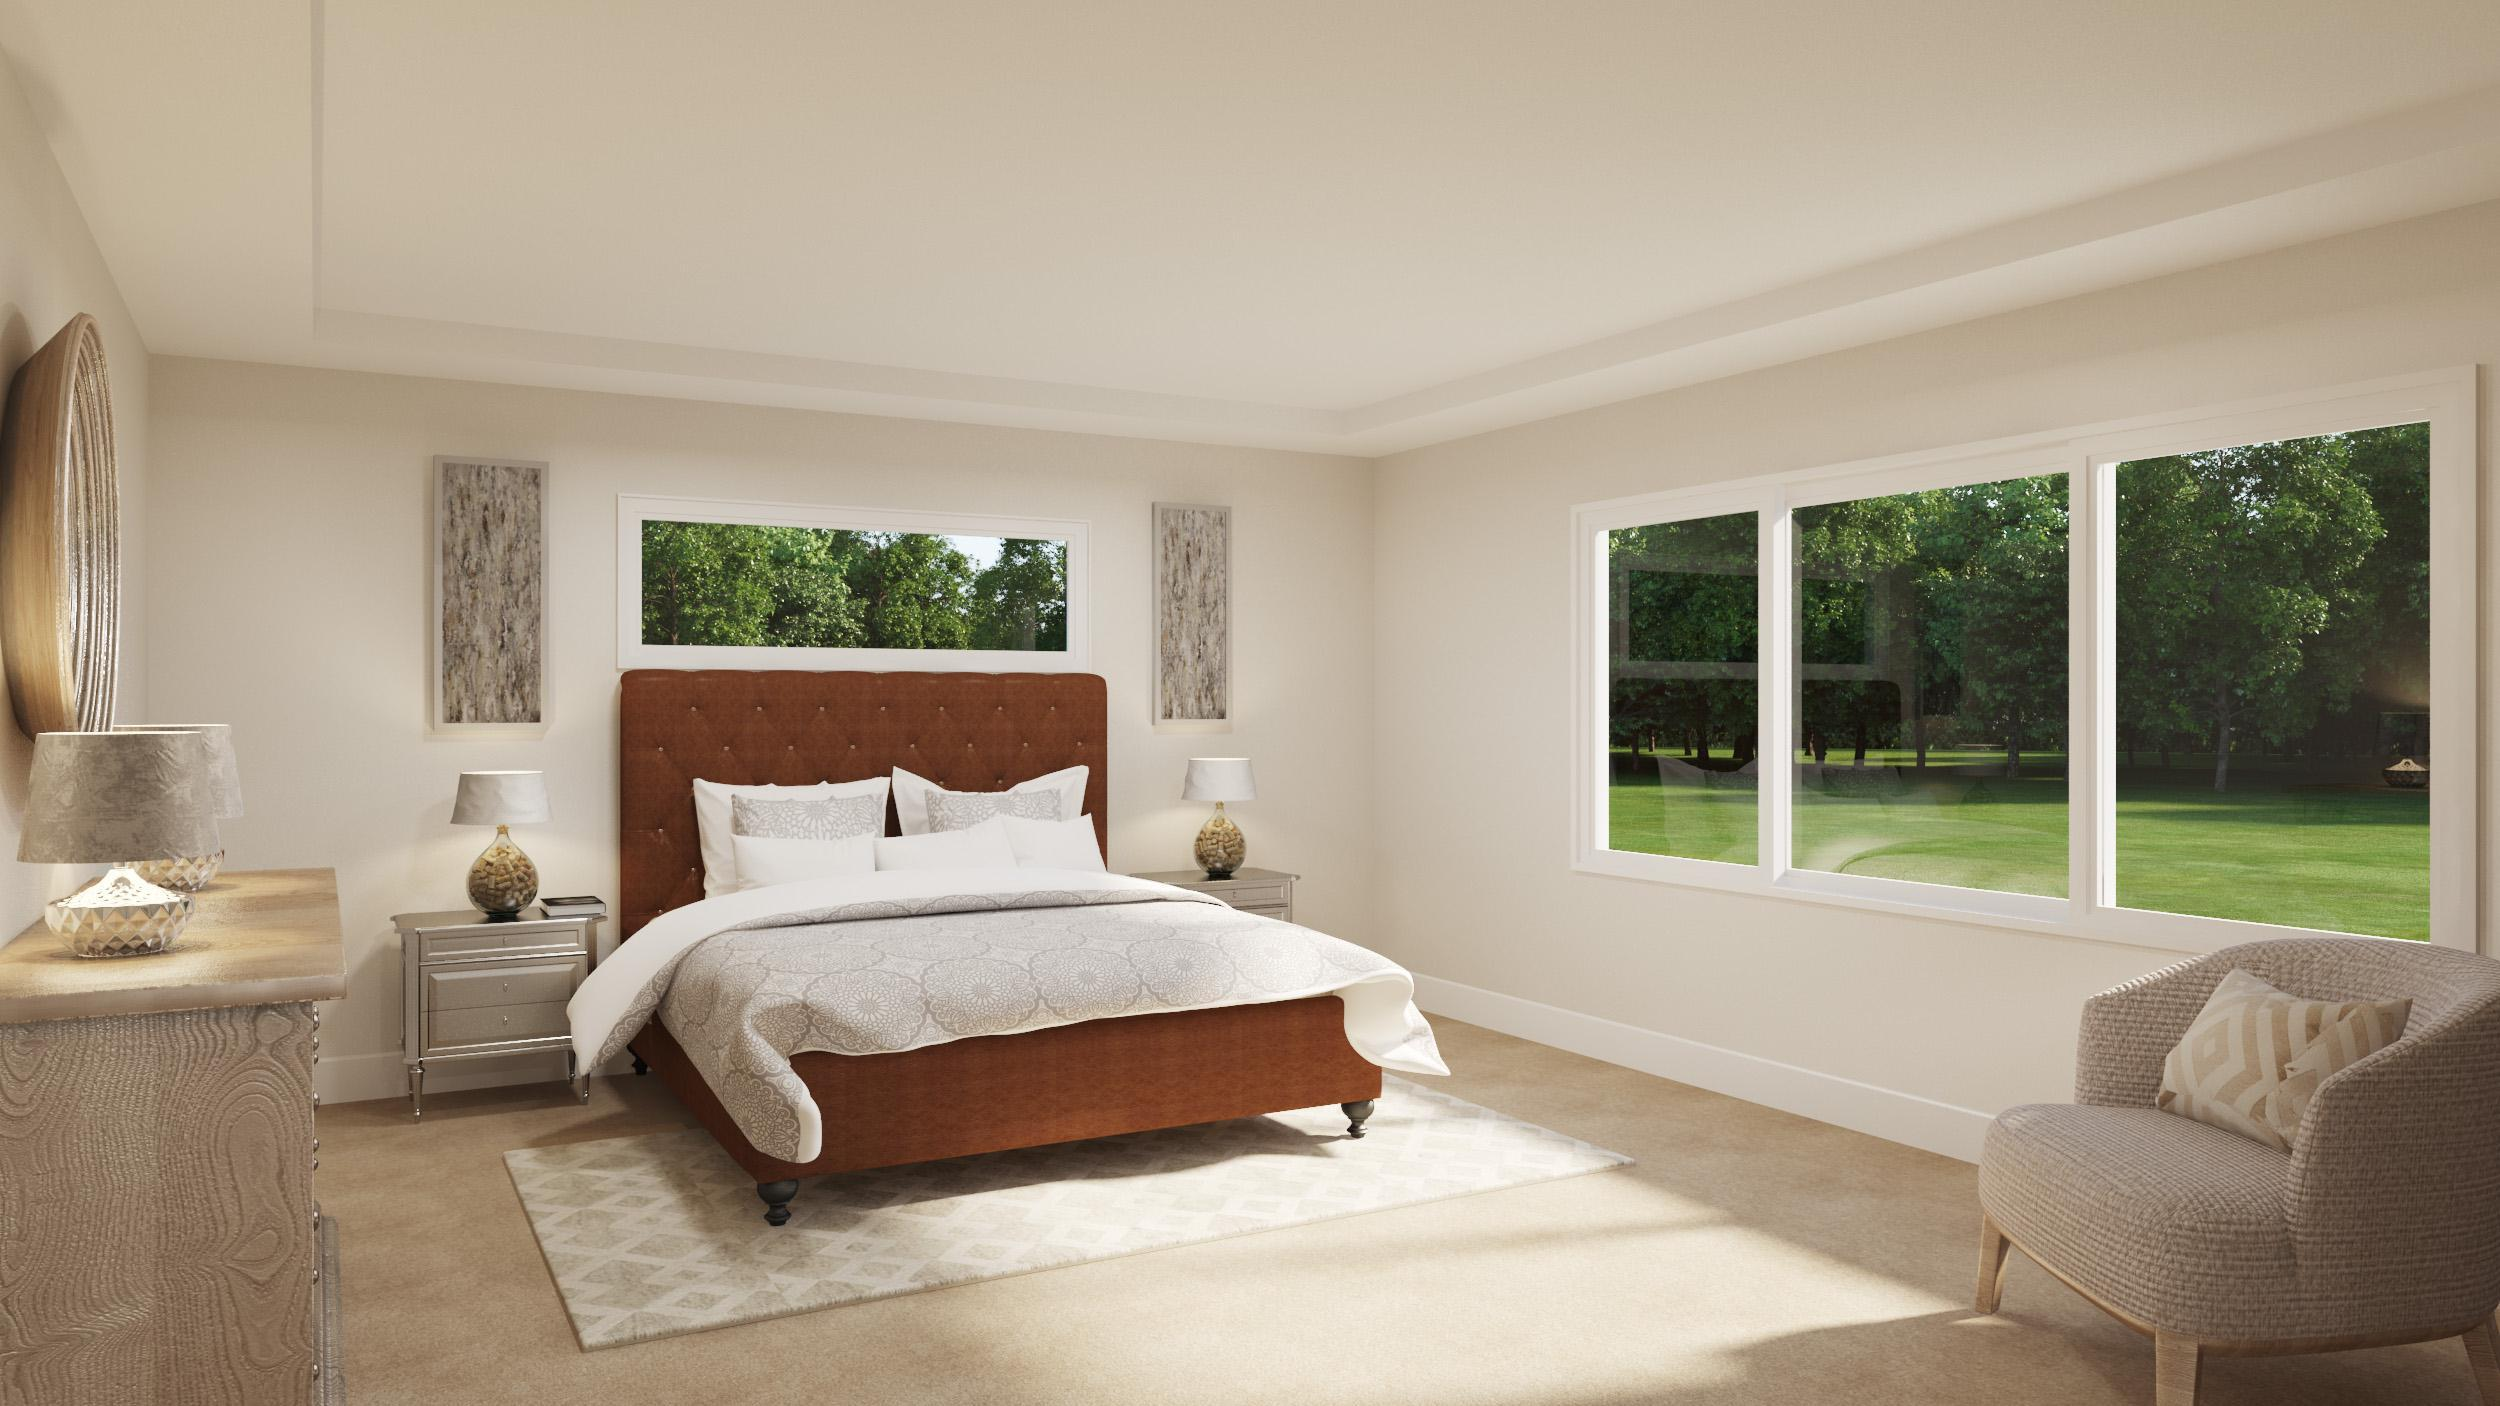 Bedroom featured in the Whidbey By Sager Family Homes in Tacoma, WA